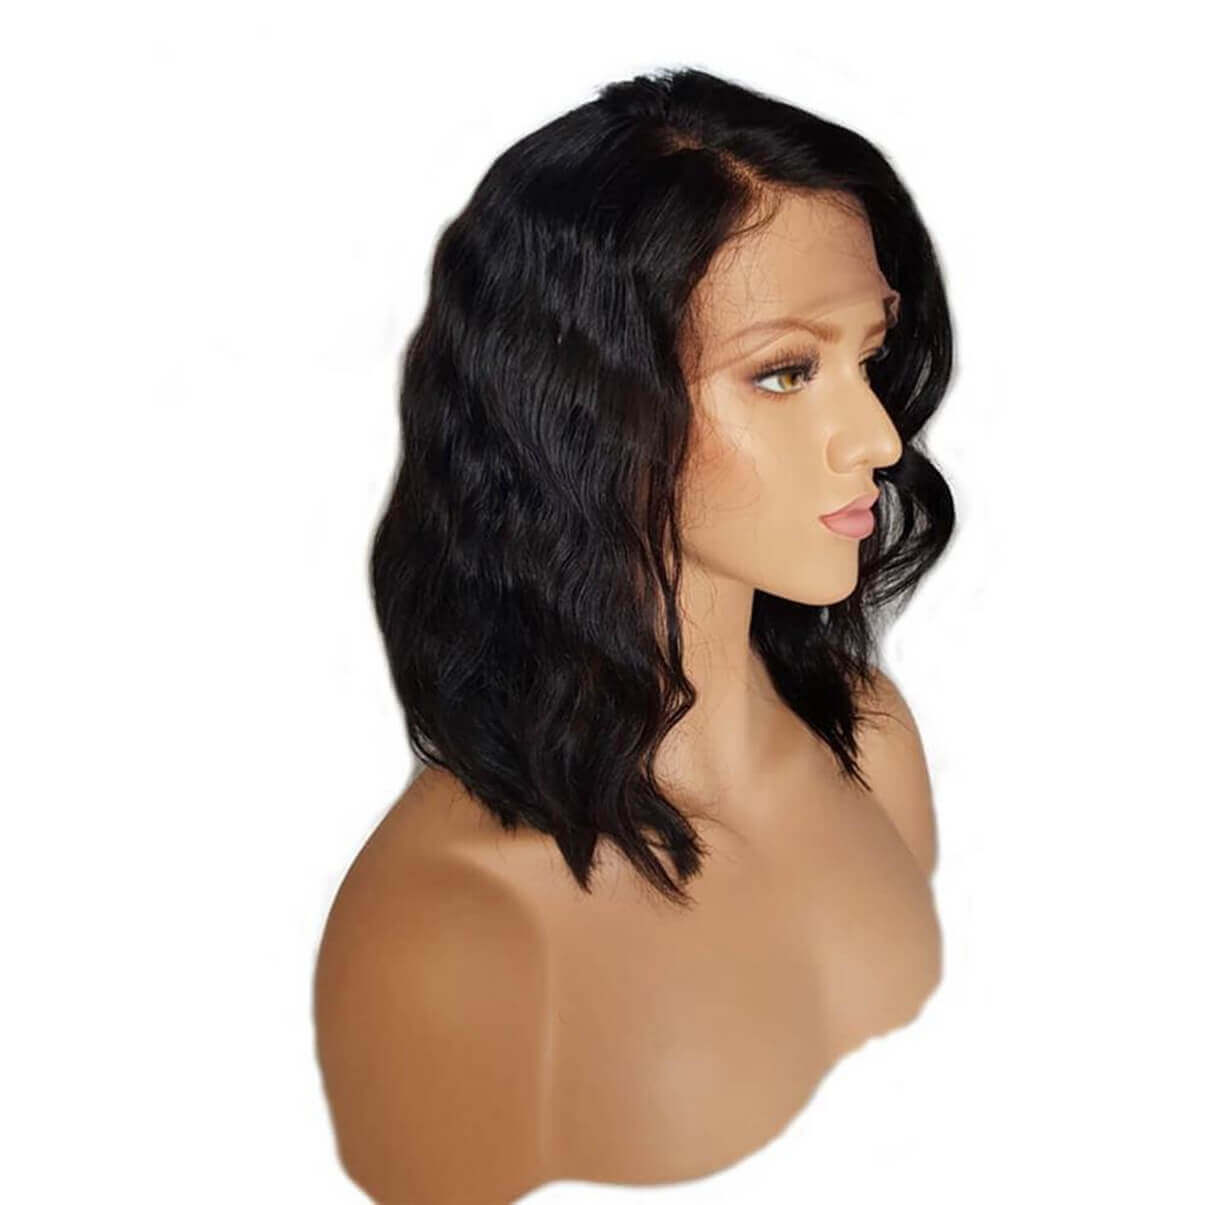 Lakihair Short Lace Front Human Hair Wigs Virgin Brazilian Body Wave Hair Bob Wigs Pre Plucked Hairline With Baby Hair Bleached Knots 180% Density